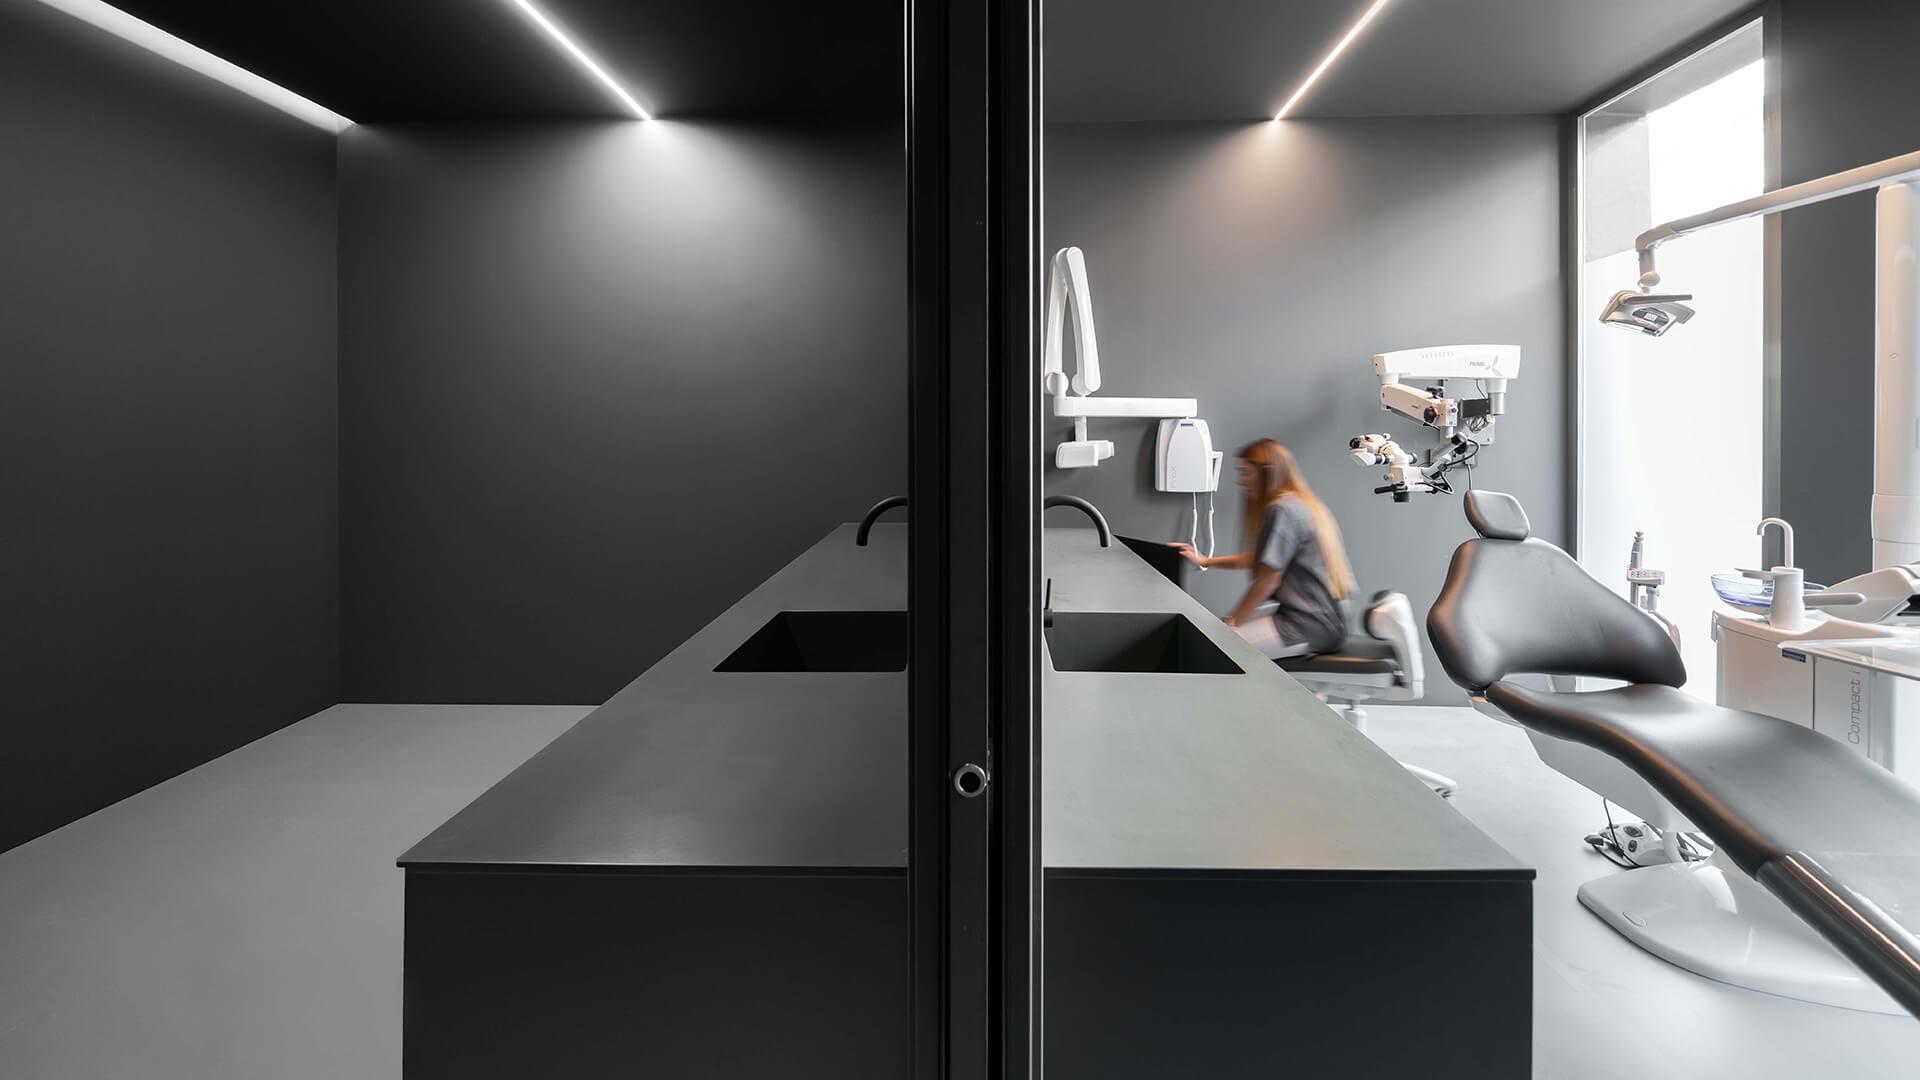 FRAME   A dental clinic makes an unlikely case for minimal design